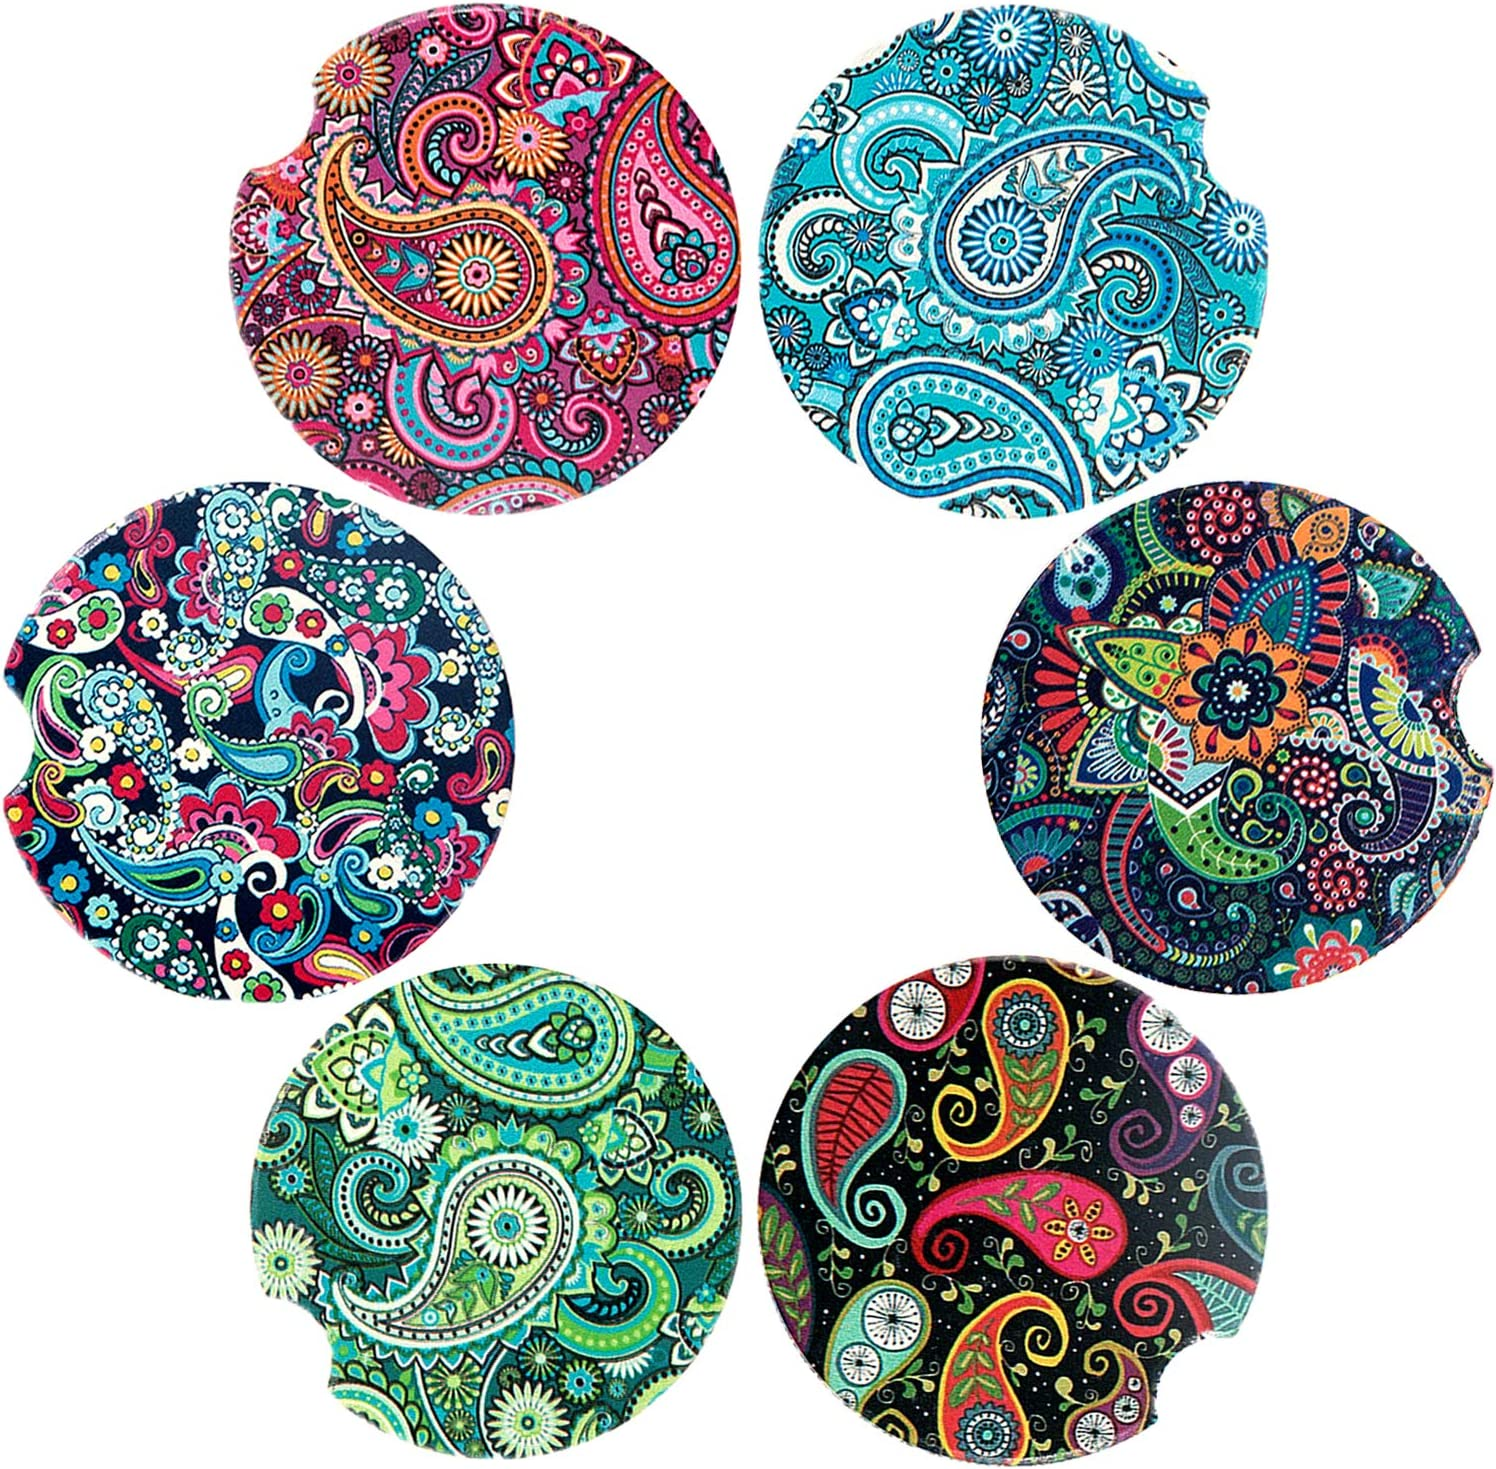 Amazon Com Staramz Car Coasters Pack Of 6 Mandala Styles Car Coasters For Cup Holders Absorbent Auto Cup Holder Coasters For Women Men Drinks Ceramic Car Accessories Small 2 56 Paisley Ethnic Coasters